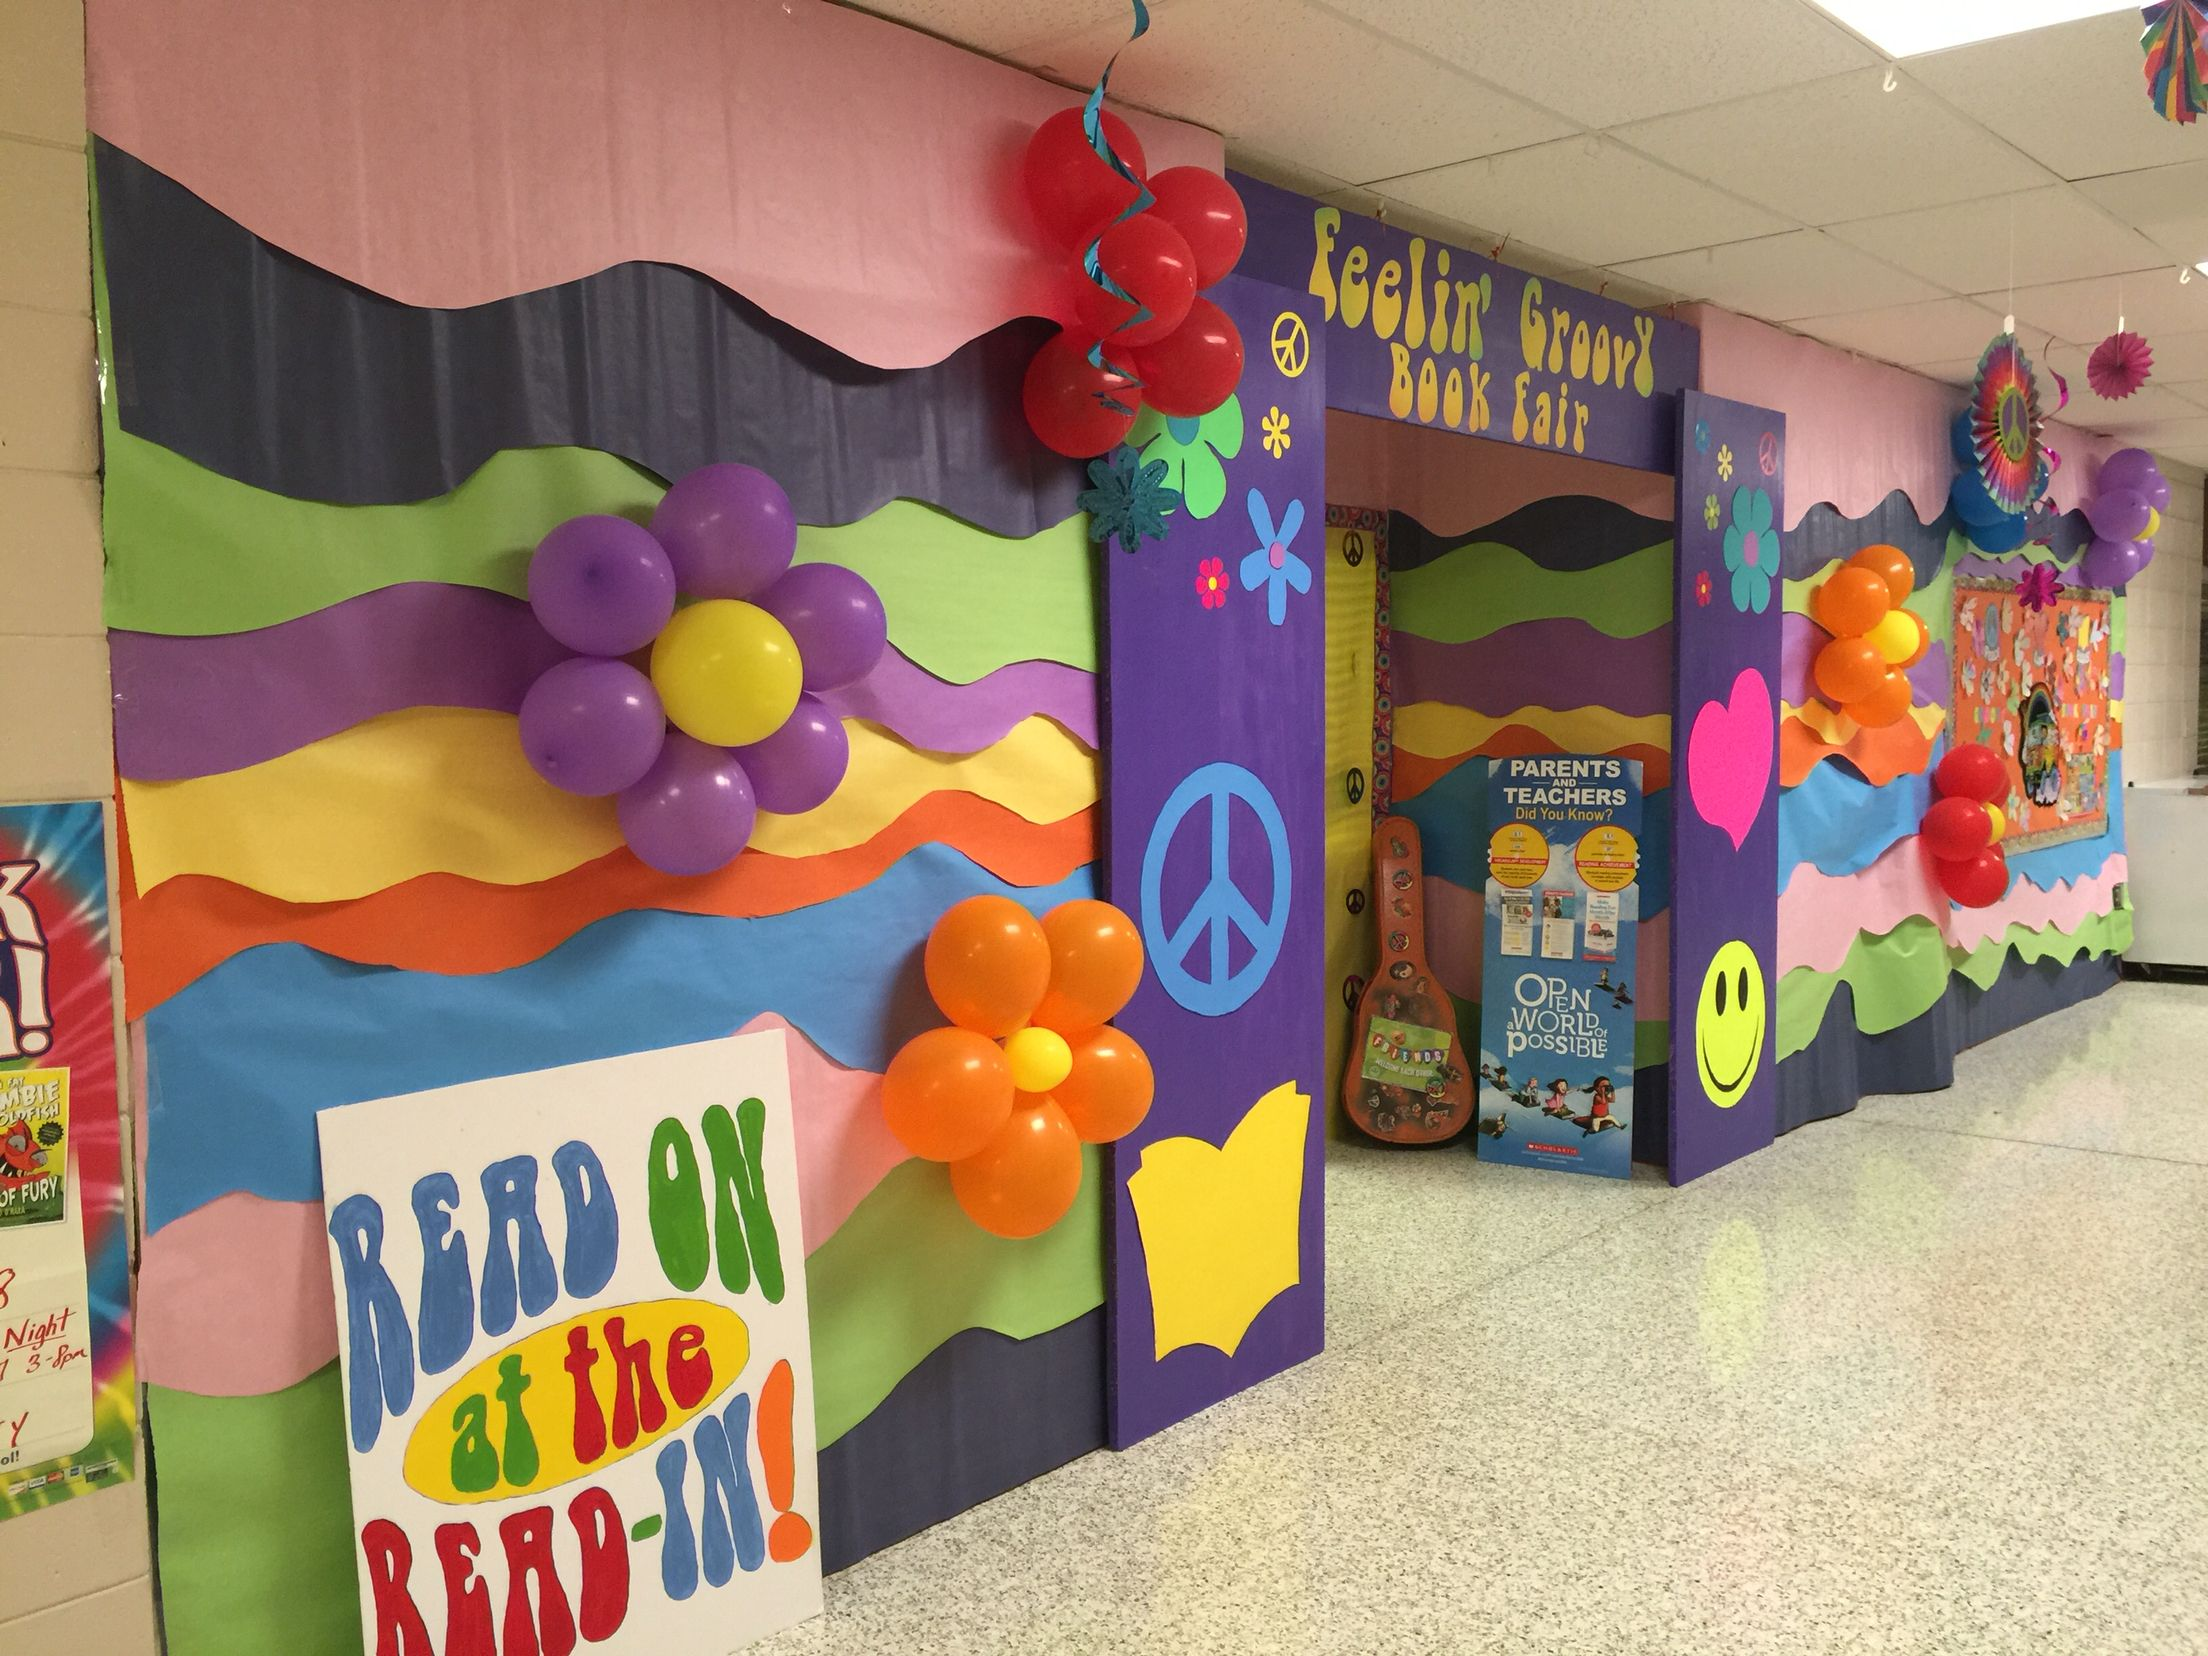 Book Fair Decorations 60s Party Themes 70s Party Decorations